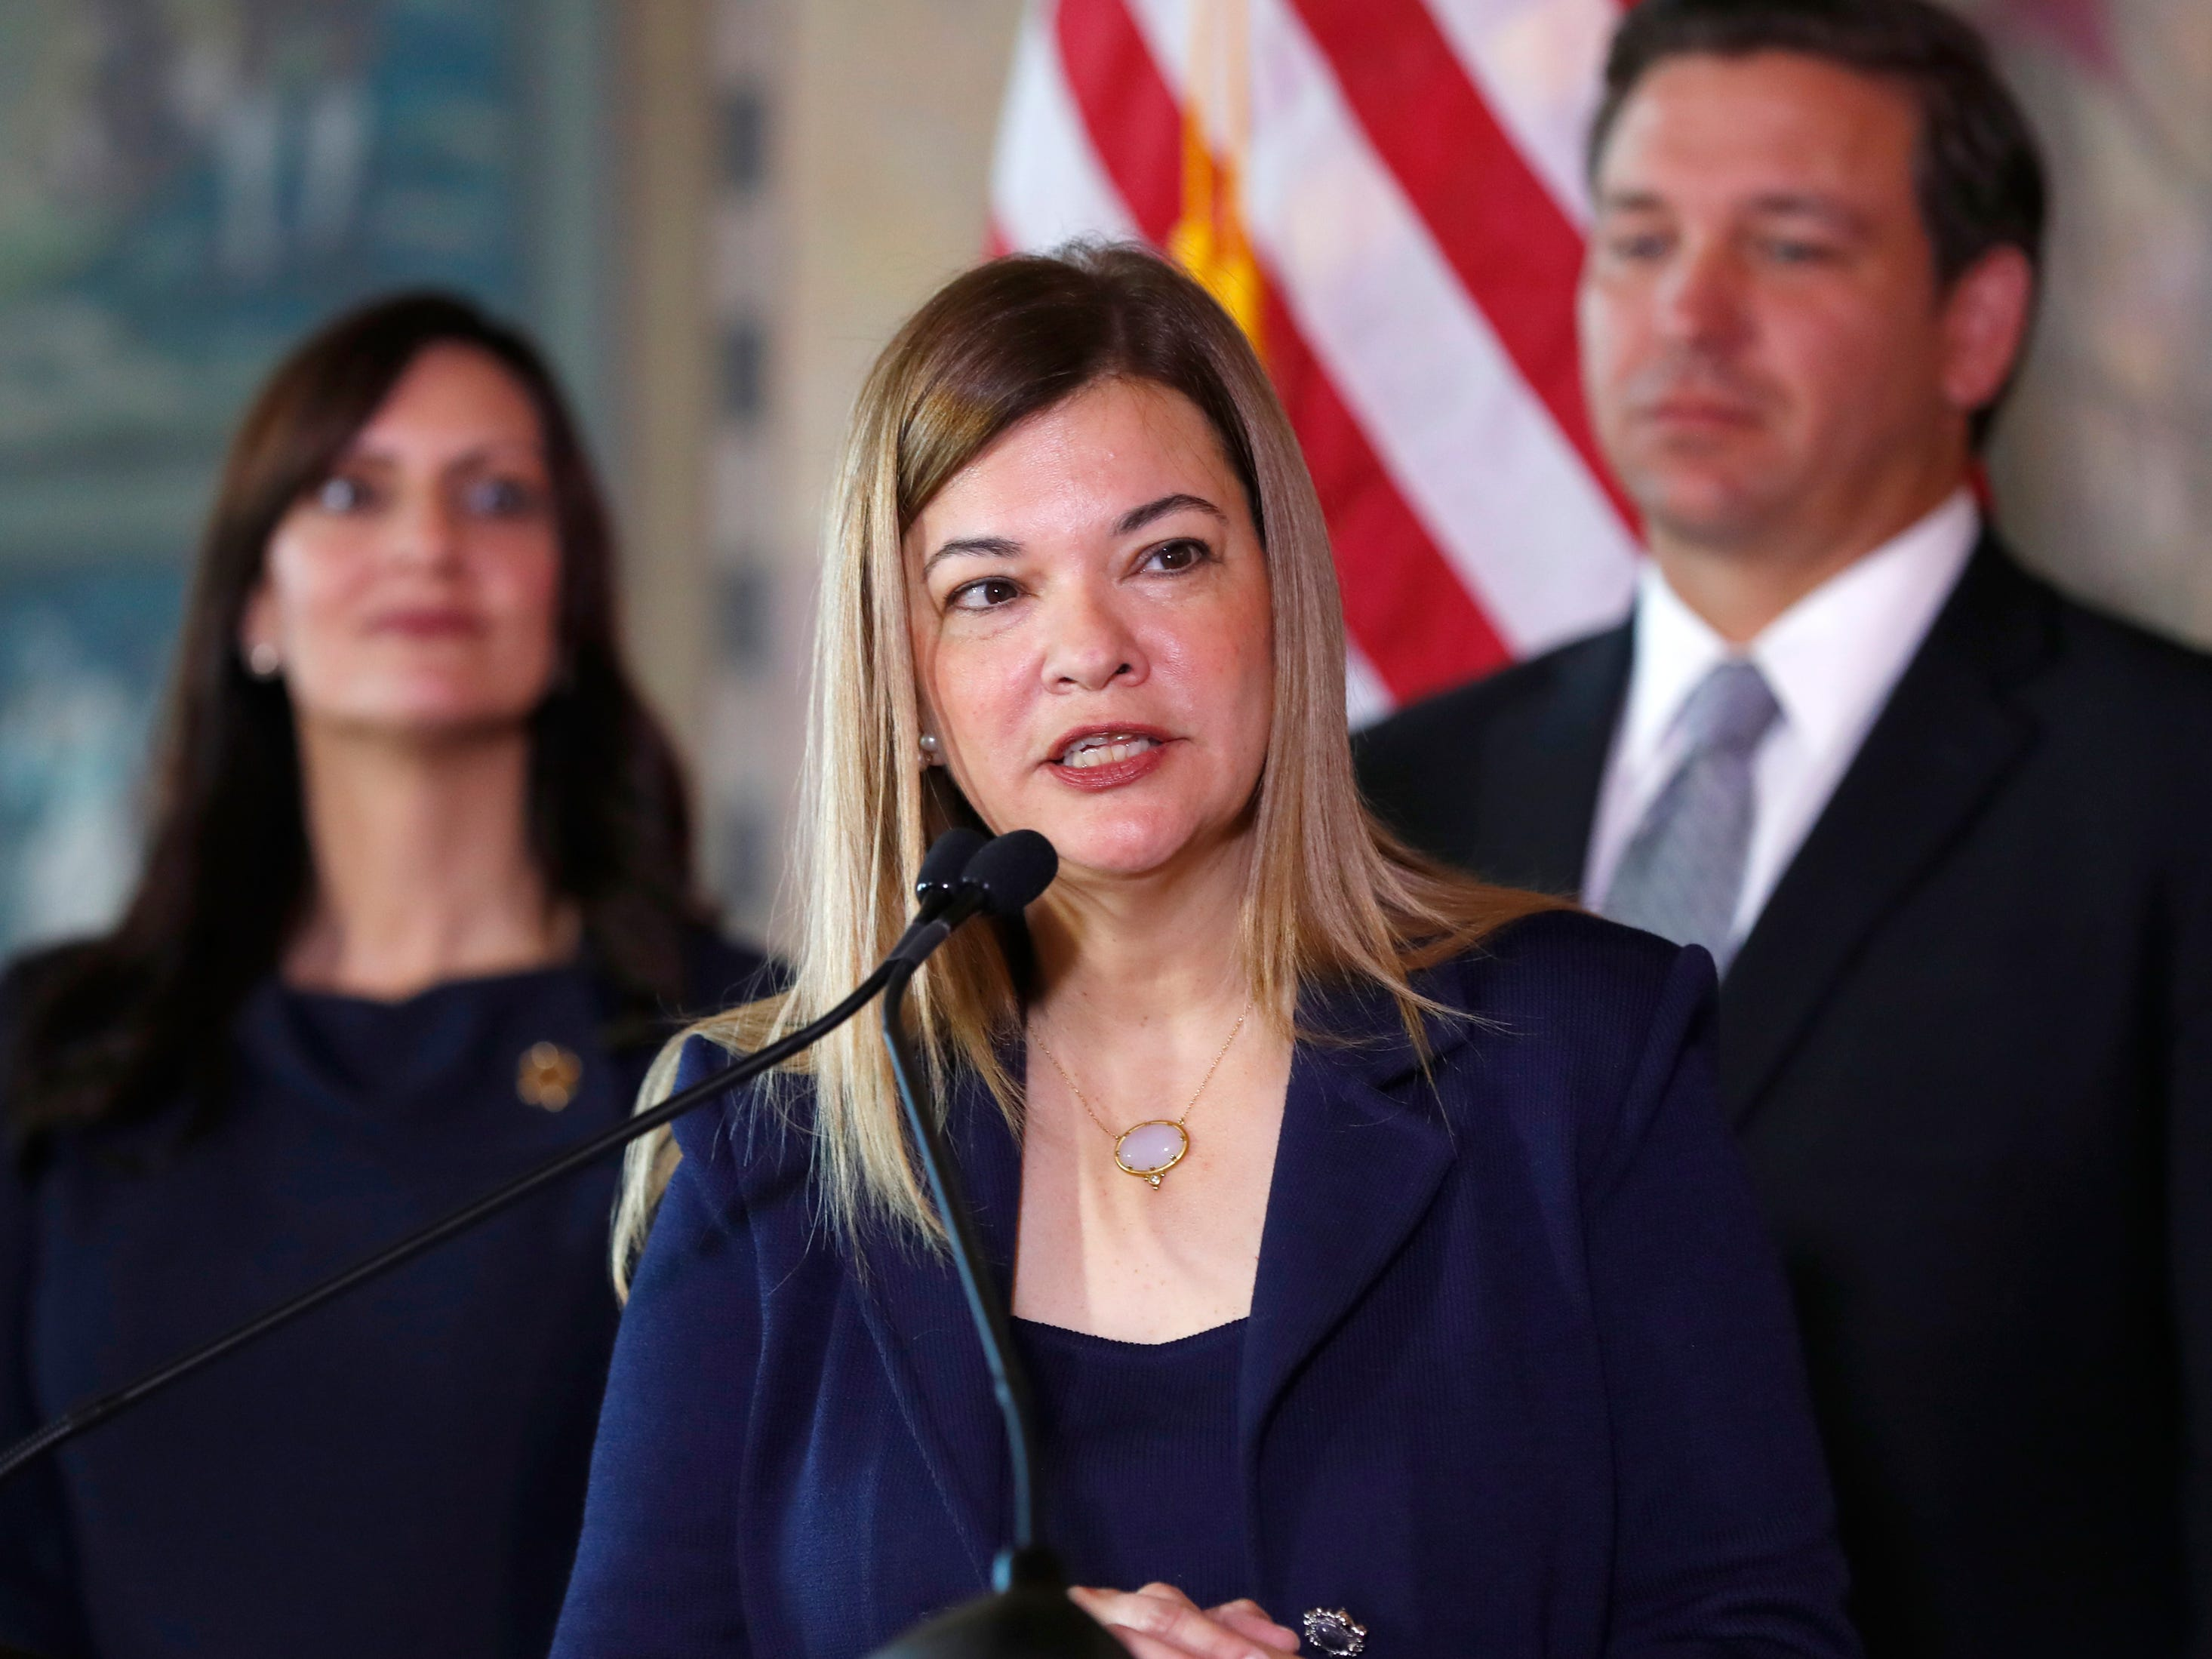 Barbara Lagoa, center, Governor Ron DeSantis' pick for the Florida Supreme Court, speaks after being introduced, as DeSantis and Lt. Gov Jeanette Nunez, left, look on, Wednesday, Jan. 9, 2019, in Miami.